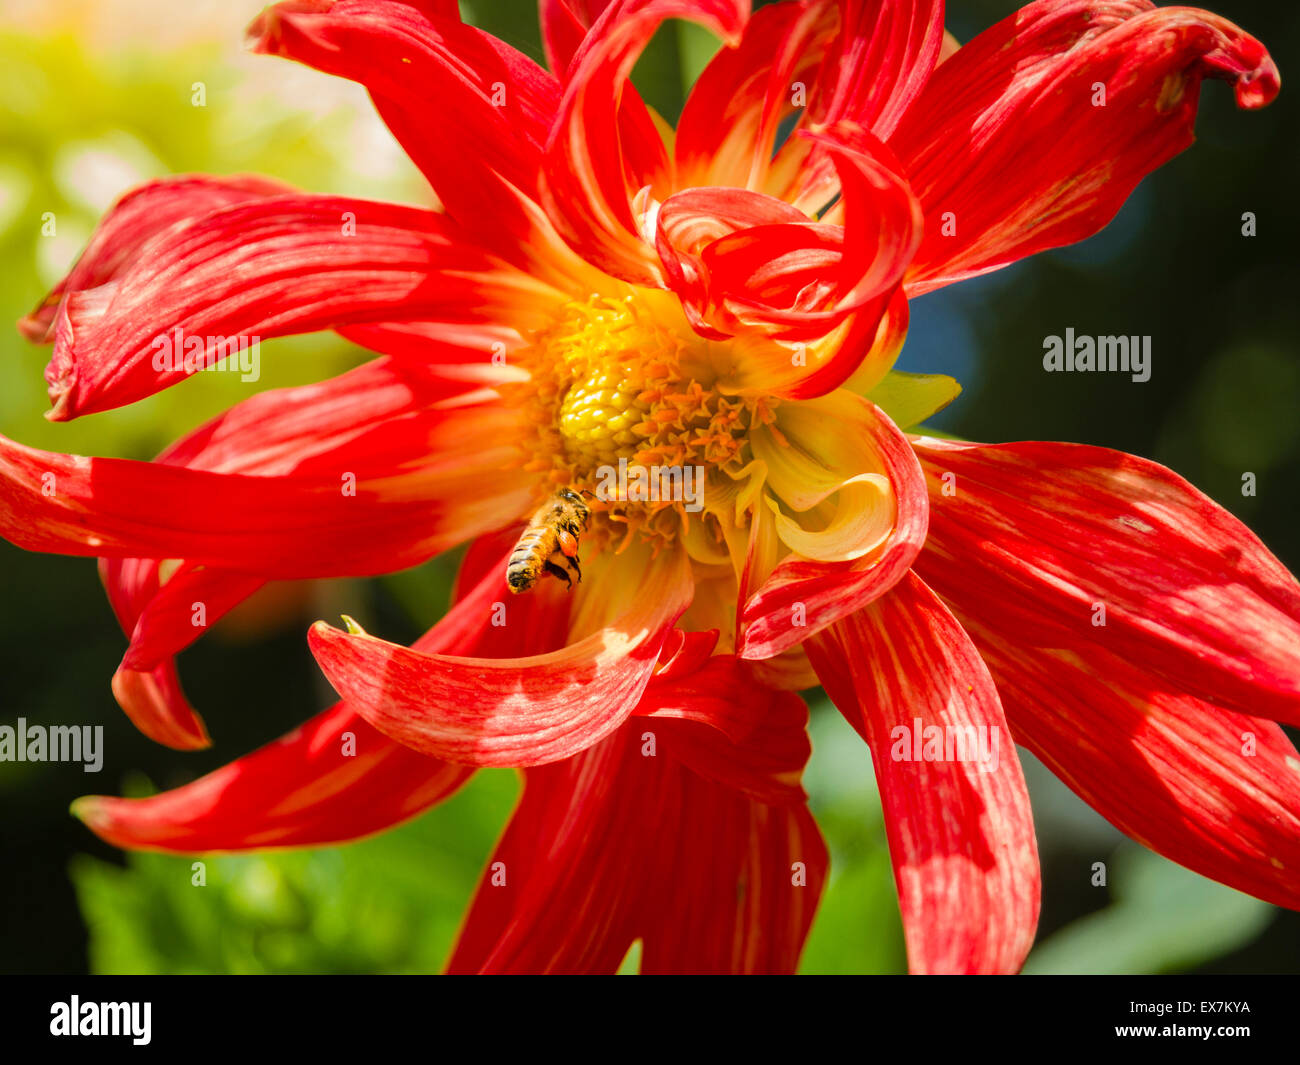 Honey bee pollinating a brilliant red and yellow dahlia with swirling petals - Stock Image